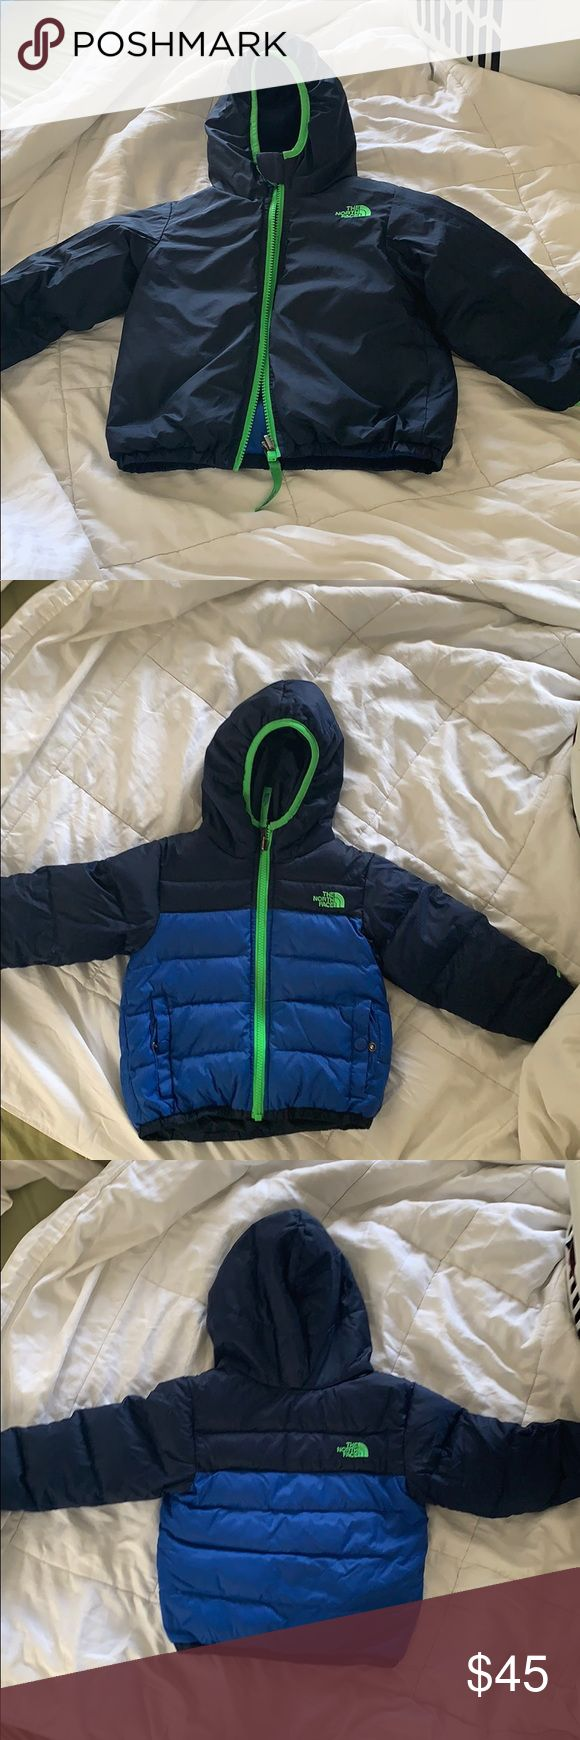 Kids Reversible The North Face Jacket 2t North Face Jacket The North Face Worn [ 1740 x 580 Pixel ]